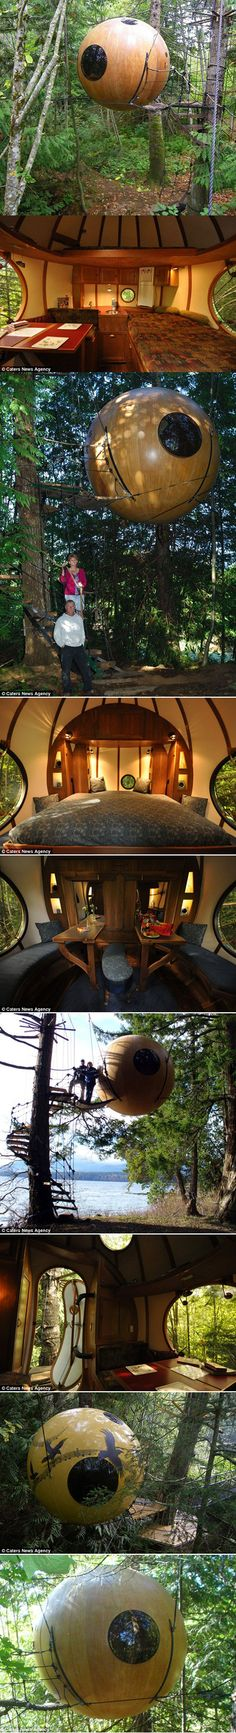 A Canadian man has built the world's first spherical treehouse hotel, suspending his guests 15ft in the air. Guests at Free Spirit Spheres sleep hanging in the treetops in the west coast rainforest of Vancouver Island, British Columbia, rocked to sleep by the wind. Inventor Tom Chudleigh has devoted his life to handcrafting the spheres from wood and fibreglass,  which each cost more than £100,000 to make.